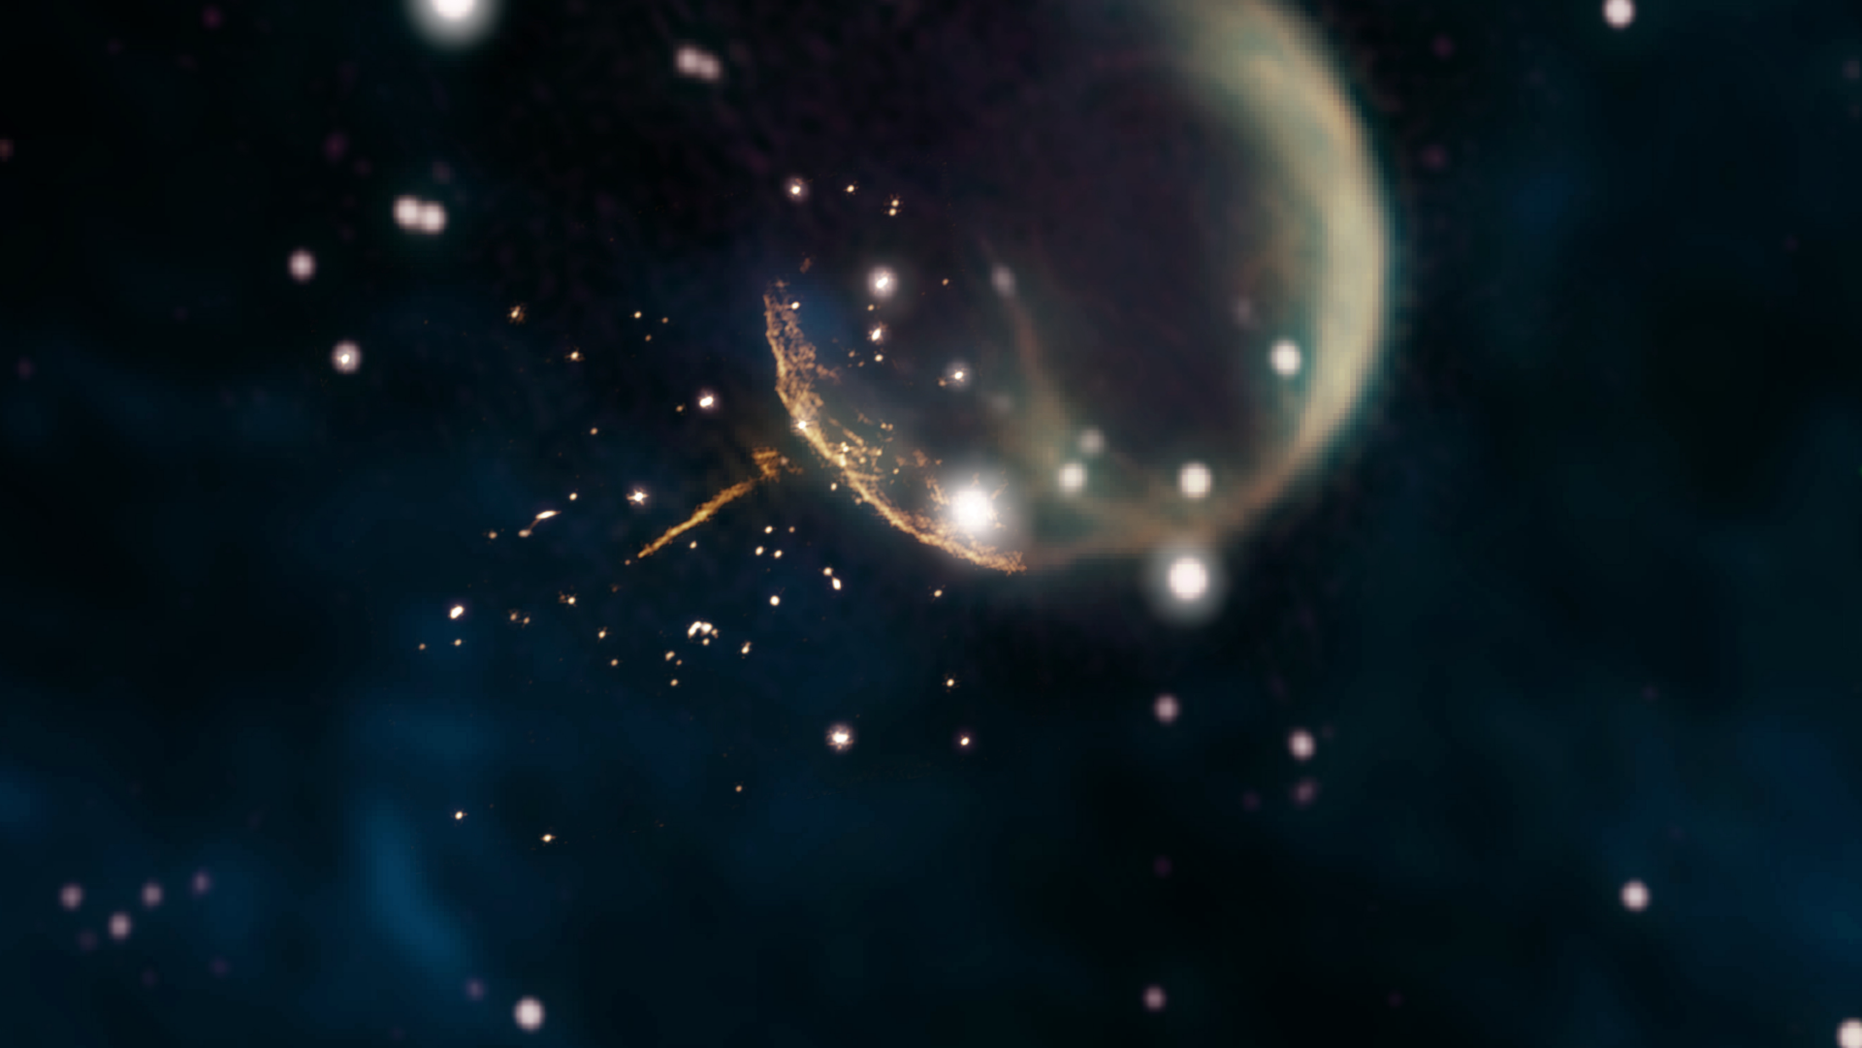 A pulsar shoots away from the supernova remnant CTB 1 in this image created with composite data from the Very Large Array and the Dominion Radio Astrophysical Observatory's Canadian Galactic Plane Survey.